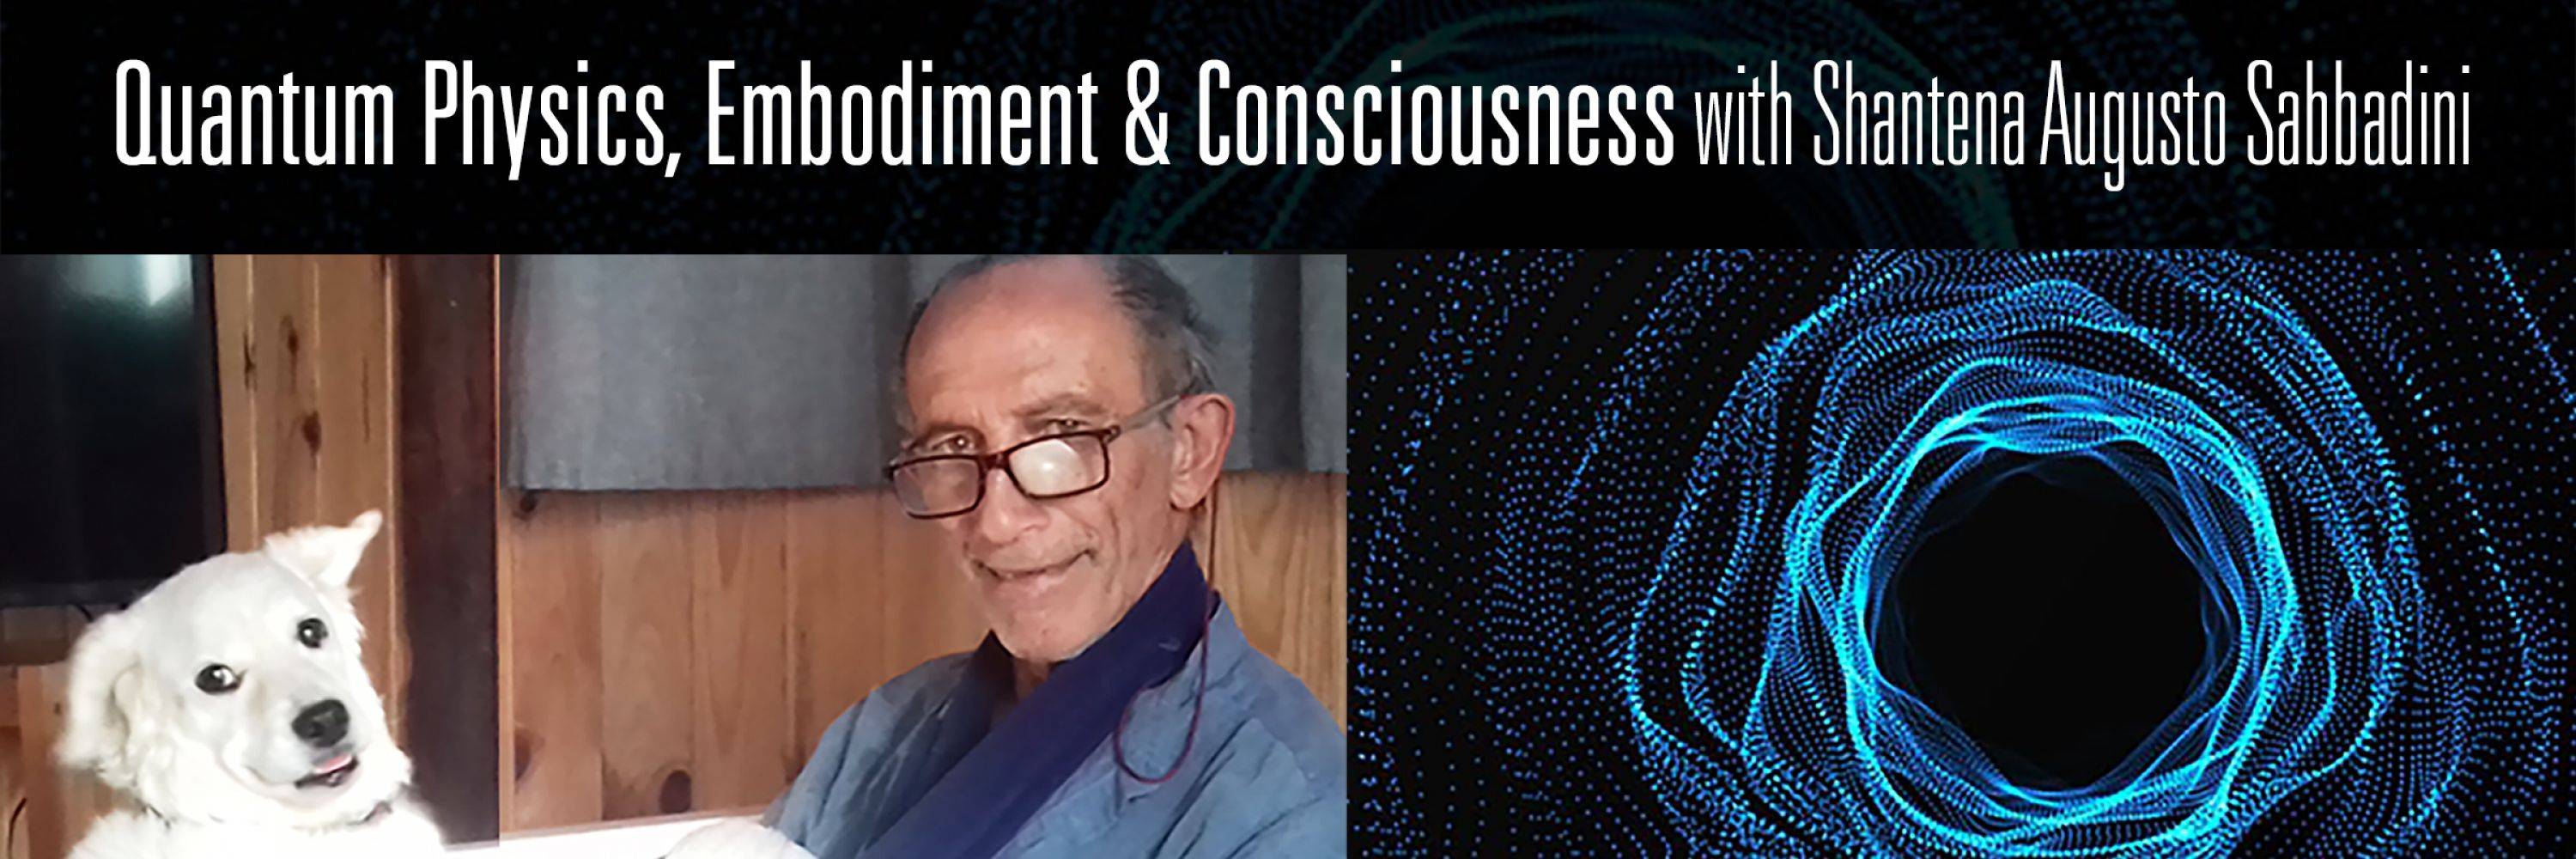 Quantum Physics, Embodiment and Consciousness